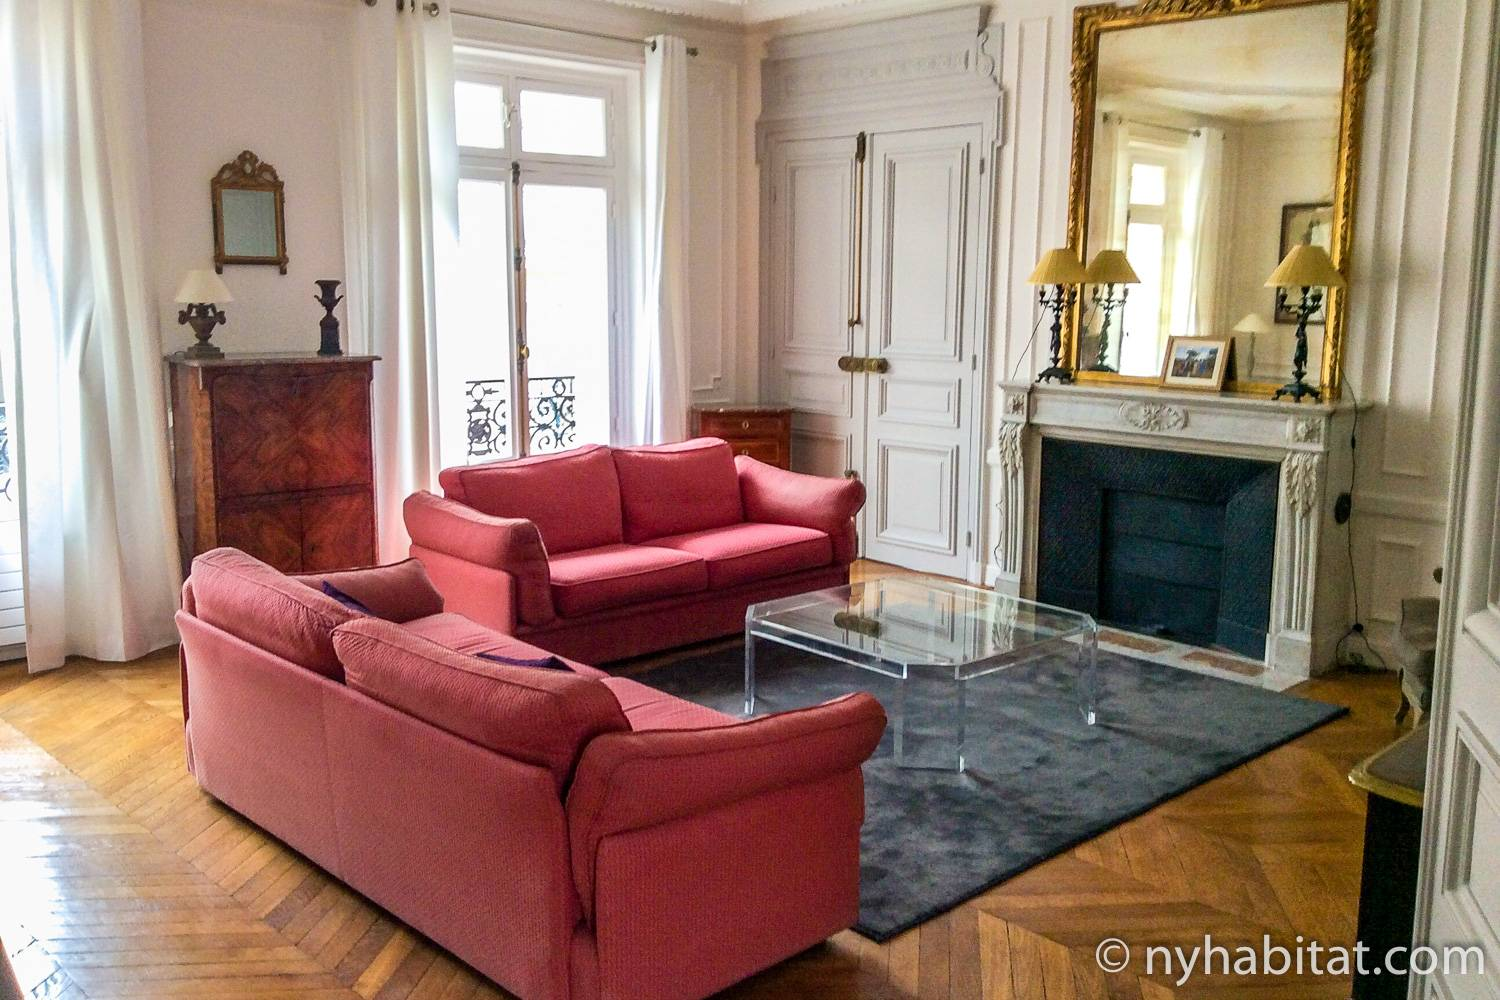 Image of living area of PA-3348 with decorative fireplace, French windows and red sofa.